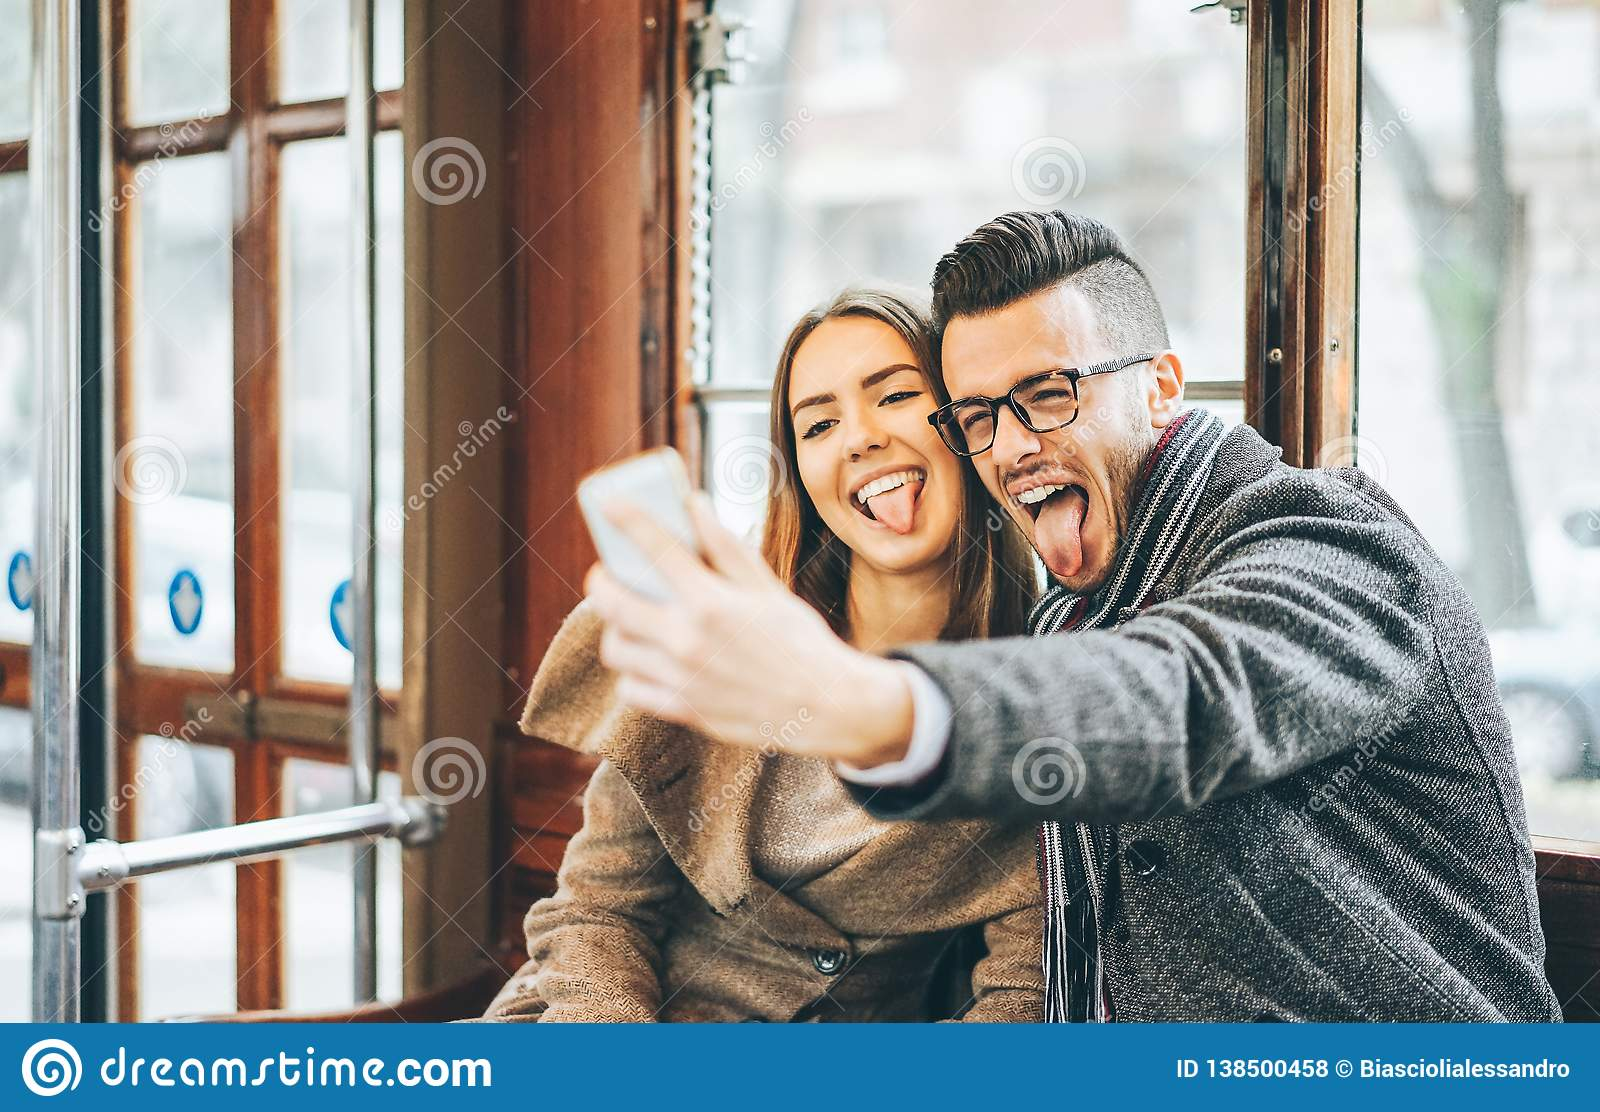 Happy young couple taking photos using mobile smart phone camera inside bus - Travel lovers making a self portrait to post